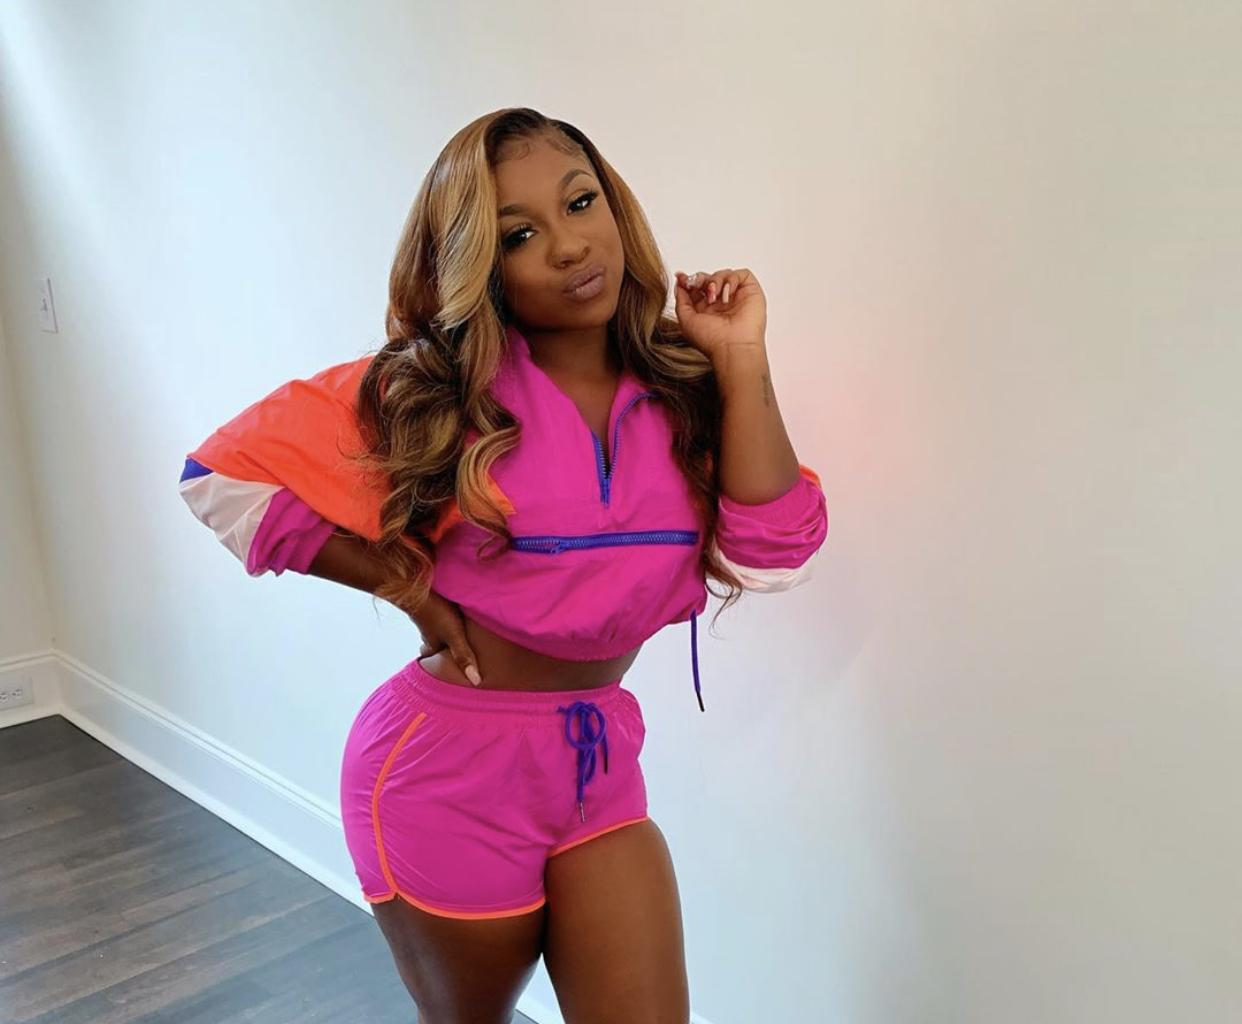 Reginae Carter Celebrates The Birthday Of Her BFF: 'My Brother From Another Mother'